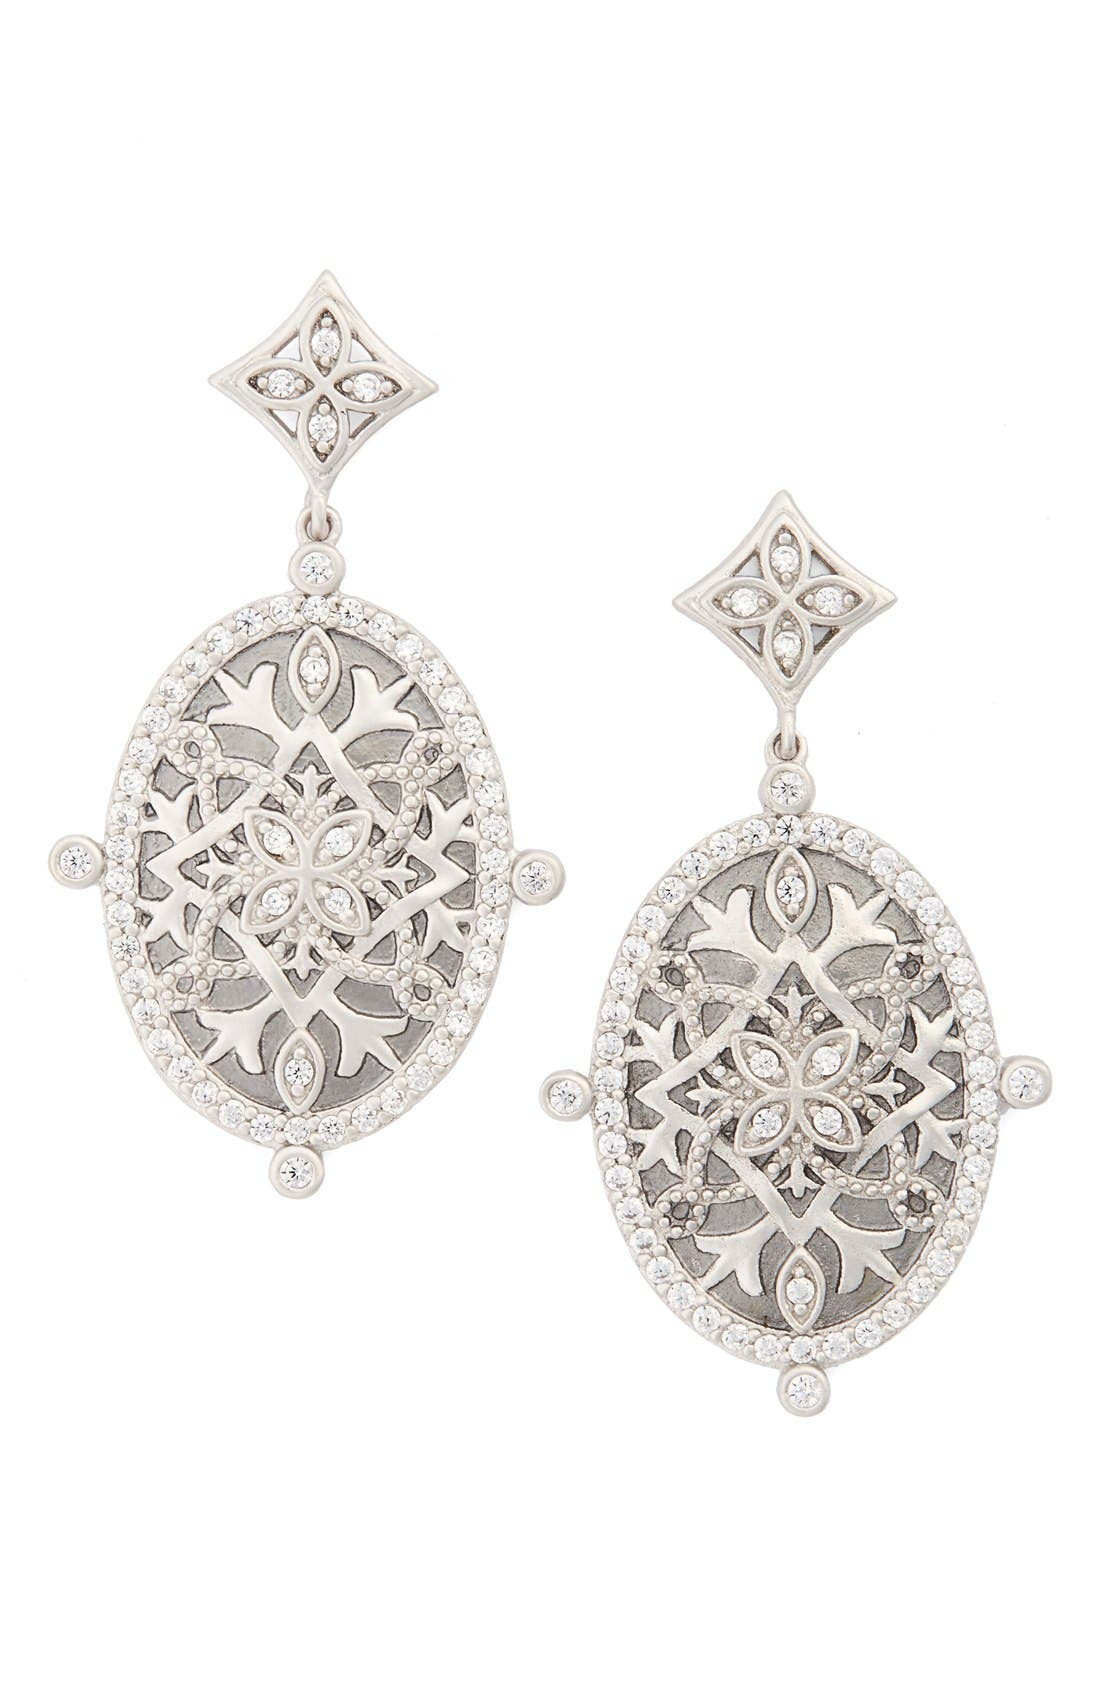 FREIDA ROTHMAN Contemporary Deco Drop Earrings